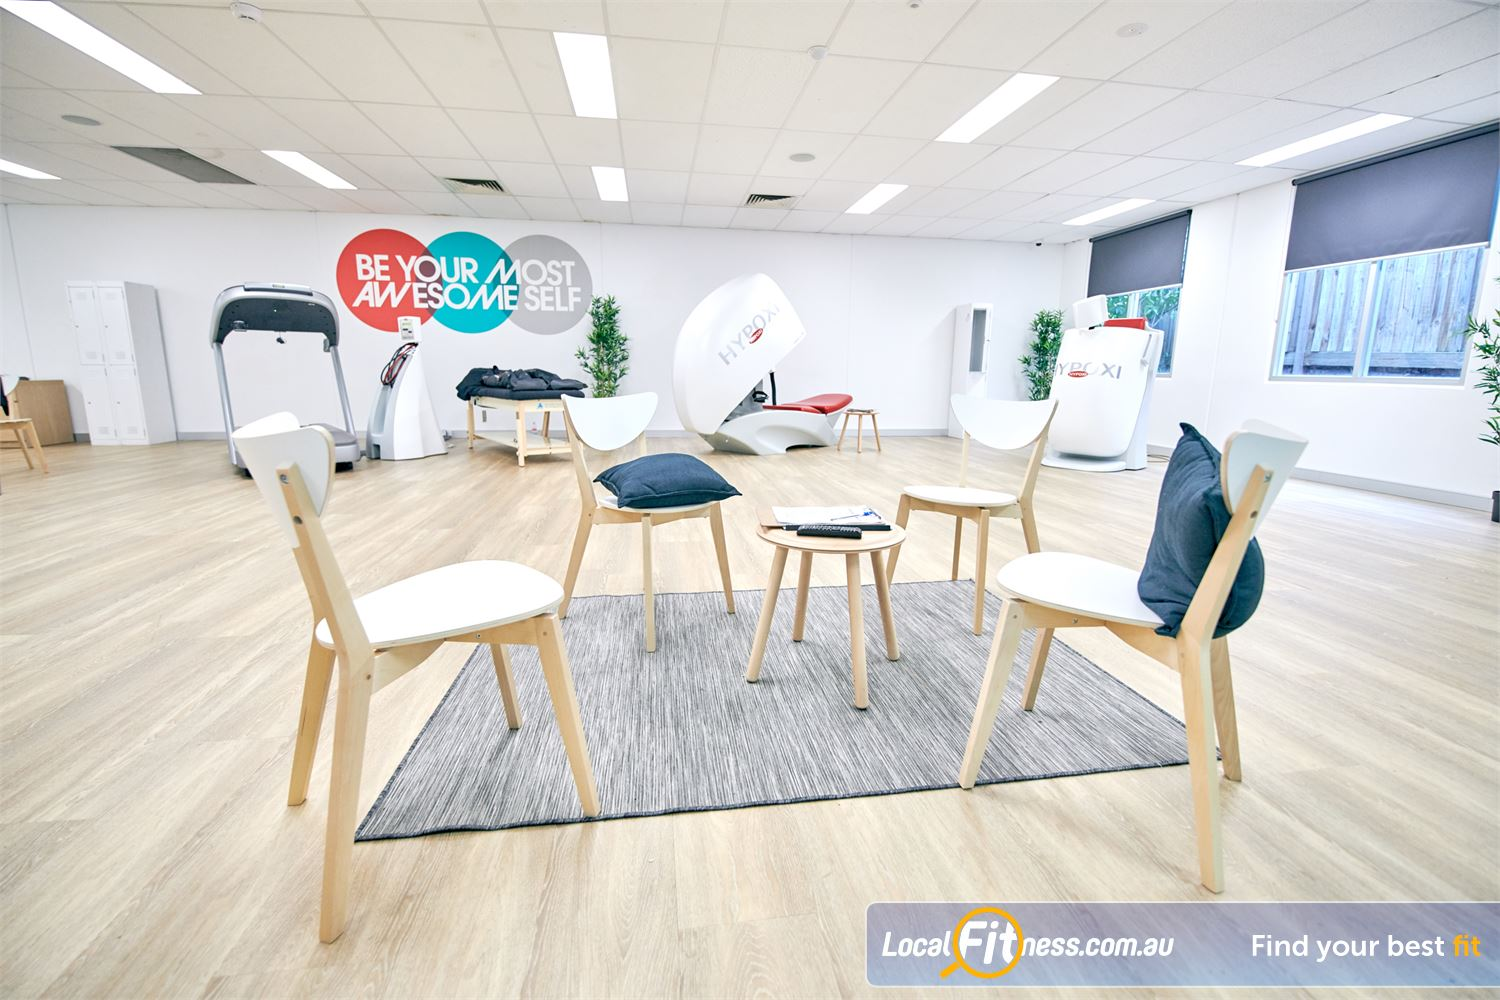 HYPOXI Weight Loss Near Wheelers Hill Our HYPOXI Glen Waverley weight-loss is personalised catering 3-4 people at a time.